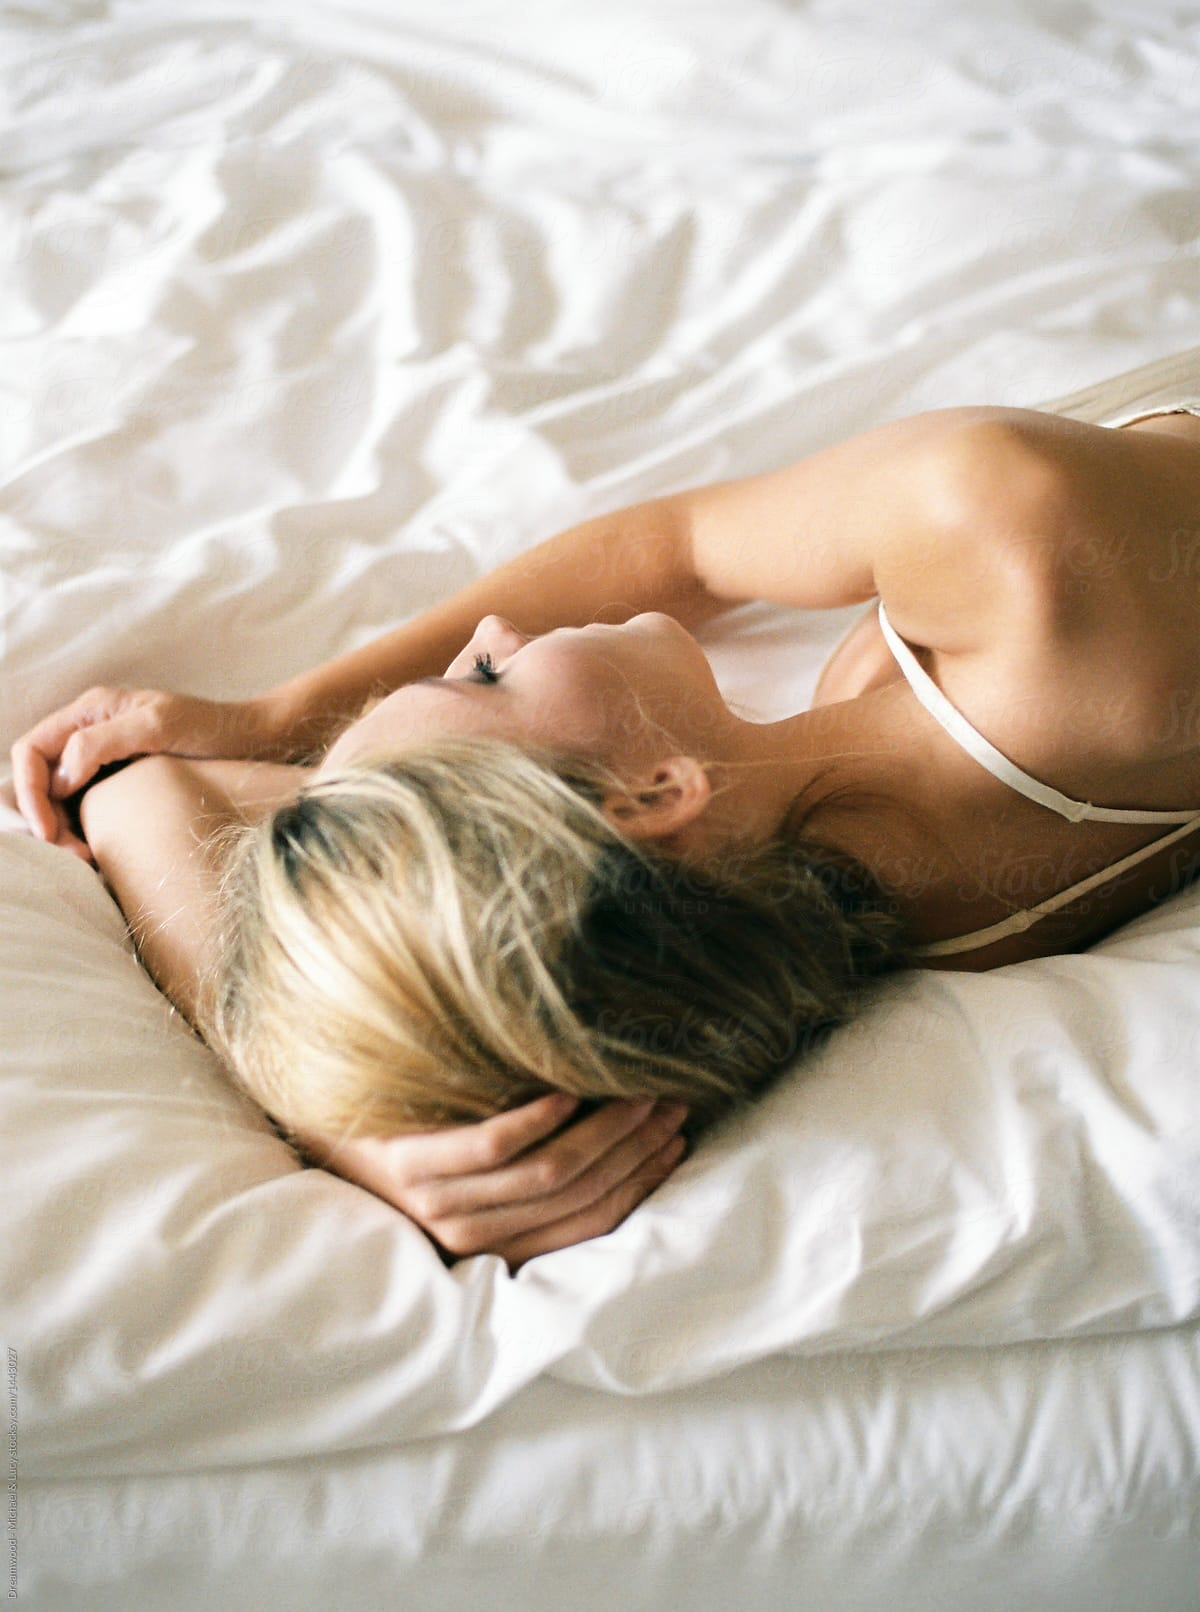 Lovely girl lying on bed by Dreamwood Photography - Morning ...